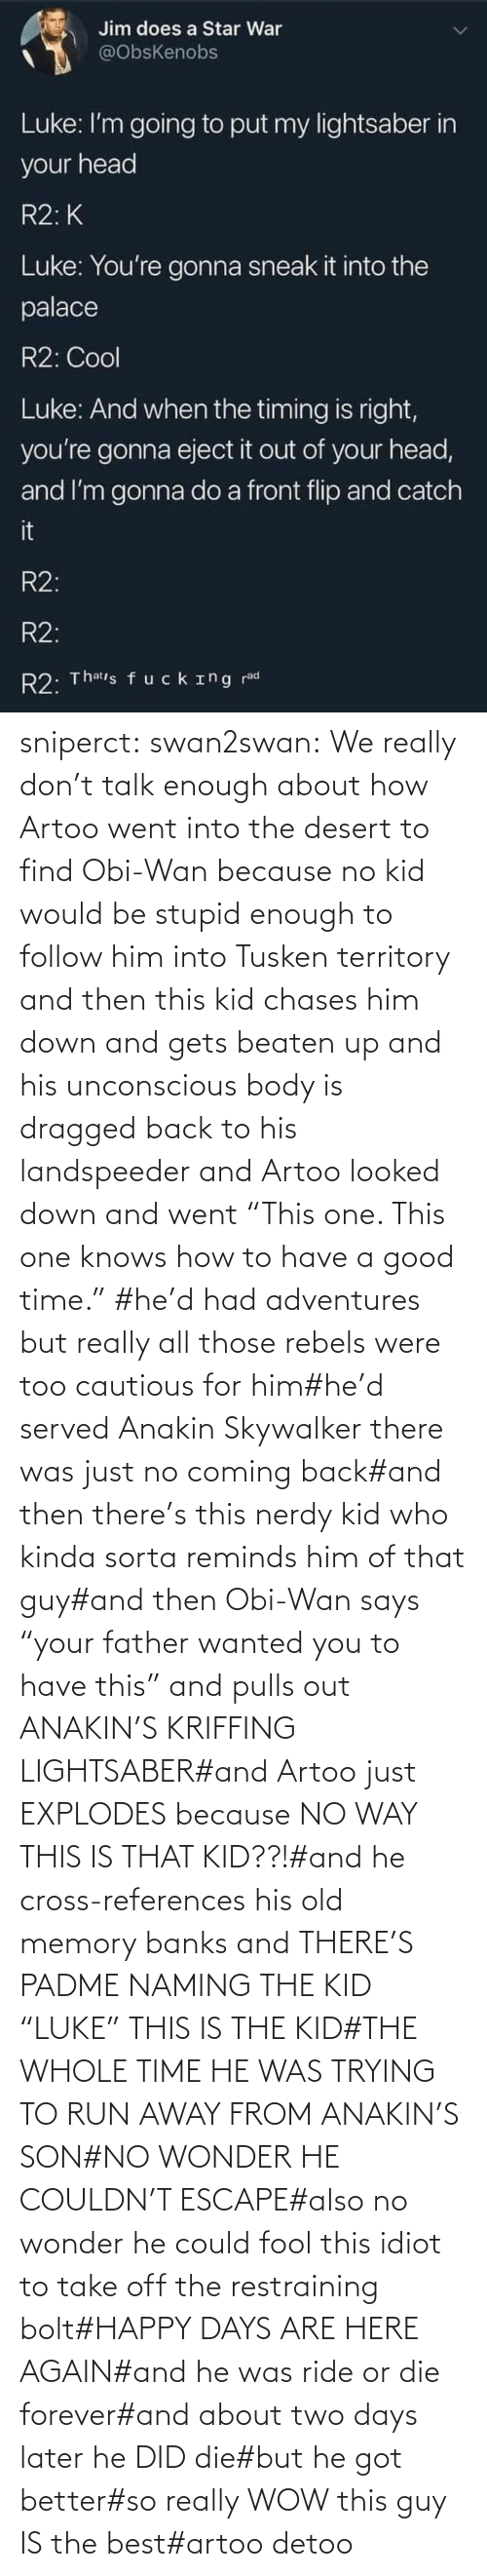 "ride: sniperct:  swan2swan: We really don't talk enough about how Artoo went into the desert to find Obi-Wan because no kid would be stupid enough to follow him into Tusken territory and then this kid chases him down and gets beaten up and his unconscious body is dragged back to his landspeeder and Artoo looked down and went ""This one. This one knows how to have a good time.""  #he'd had adventures but really all those rebels were too cautious for him#he'd served Anakin Skywalker there was just no coming back#and then there's this nerdy kid who kinda sorta reminds him of that guy#and then Obi-Wan says ""your father wanted you to have this"" and pulls out ANAKIN'S KRIFFING LIGHTSABER#and Artoo just EXPLODES because NO WAY THIS IS THAT KID??!#and he cross-references his old memory banks and THERE'S PADME NAMING THE KID ""LUKE"" THIS IS THE KID#THE WHOLE TIME HE WAS TRYING TO RUN AWAY FROM ANAKIN'S SON#NO WONDER HE COULDN'T ESCAPE#also no wonder he could fool this idiot to take off the restraining bolt#HAPPY DAYS ARE HERE AGAIN#and he was ride or die forever#and about two days later he DID die#but he got better#so really WOW this guy IS the best#artoo detoo"